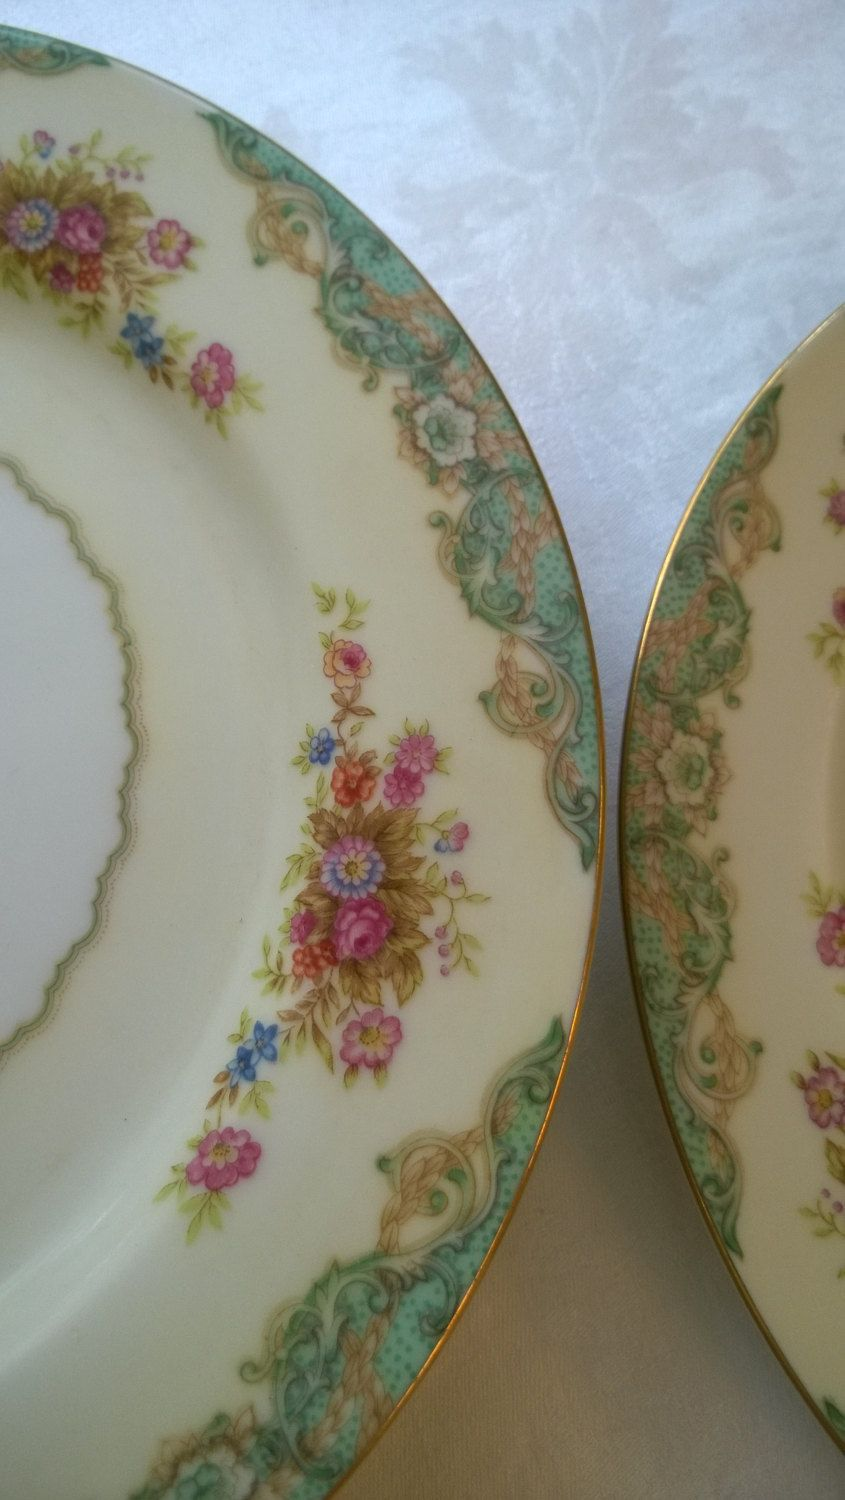 vintage china dinner plates4 Craftsman china plates made in Japan by highlandcottage on Etsy & vintage china dinner plates4 Craftsman china plates made in Japan ...